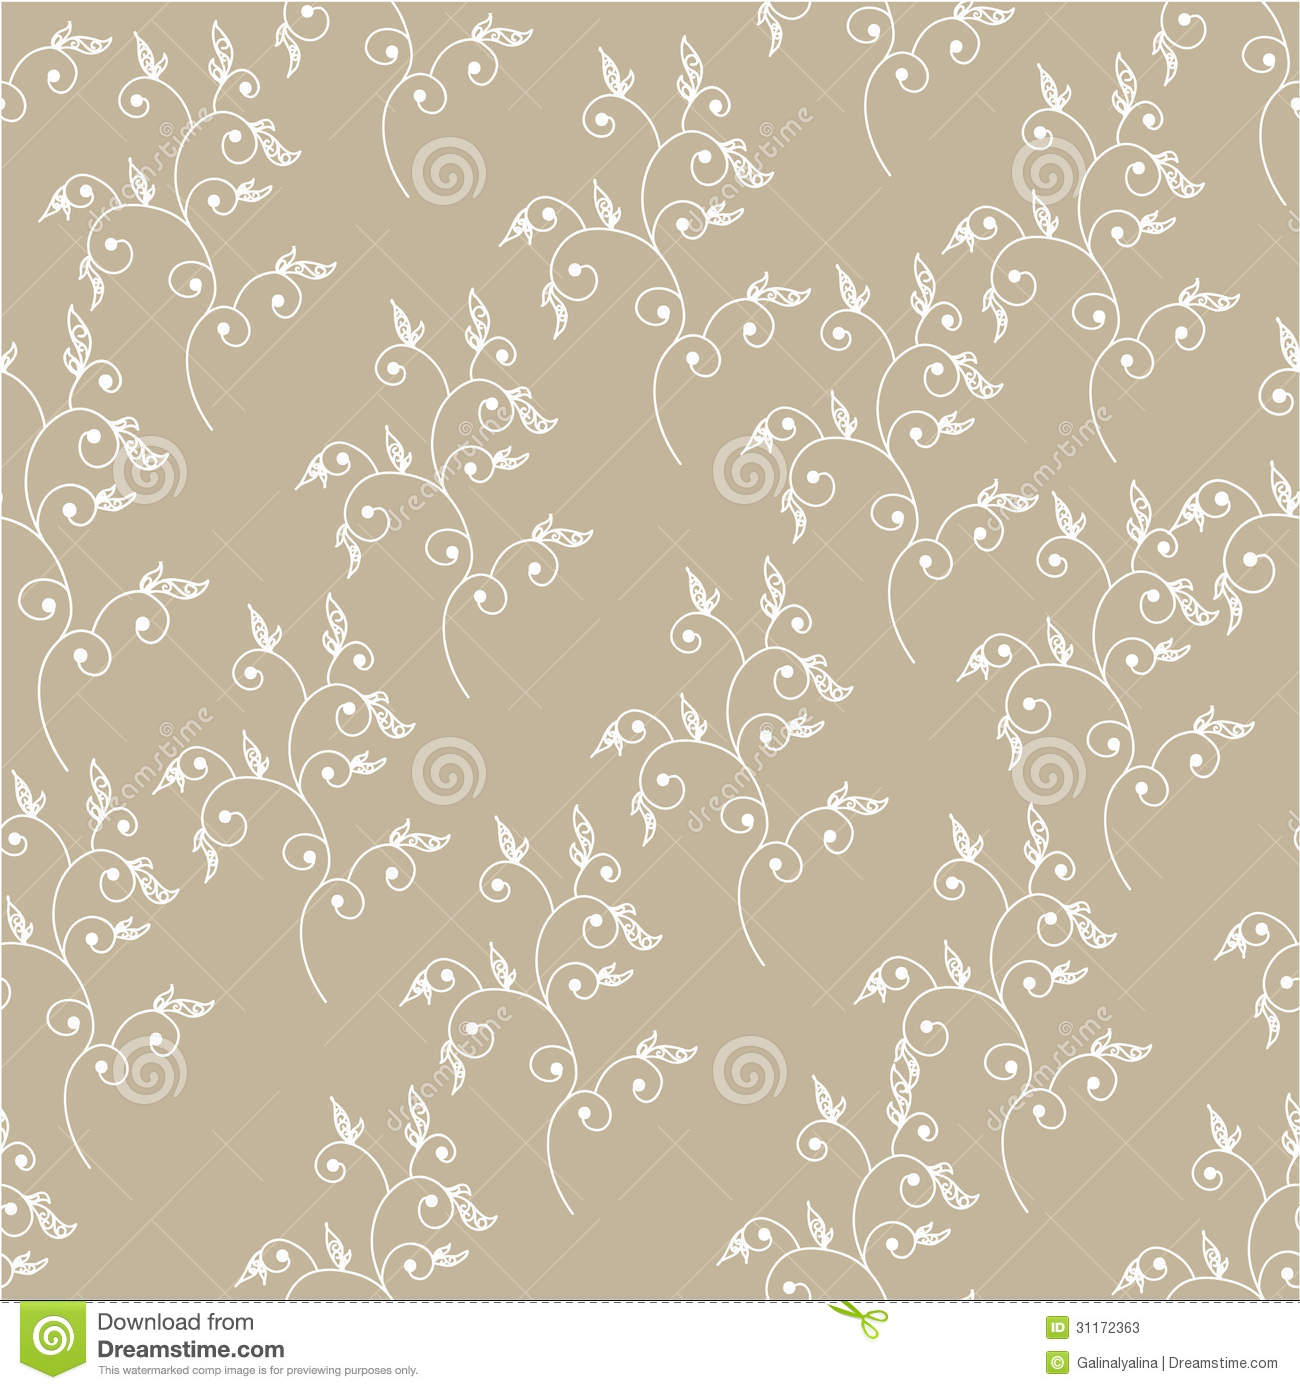 Seamless Texture With FlowersSeamless Pattern Can Be Used For Wallpaper Fills Web Page Backgroundsurface Textures